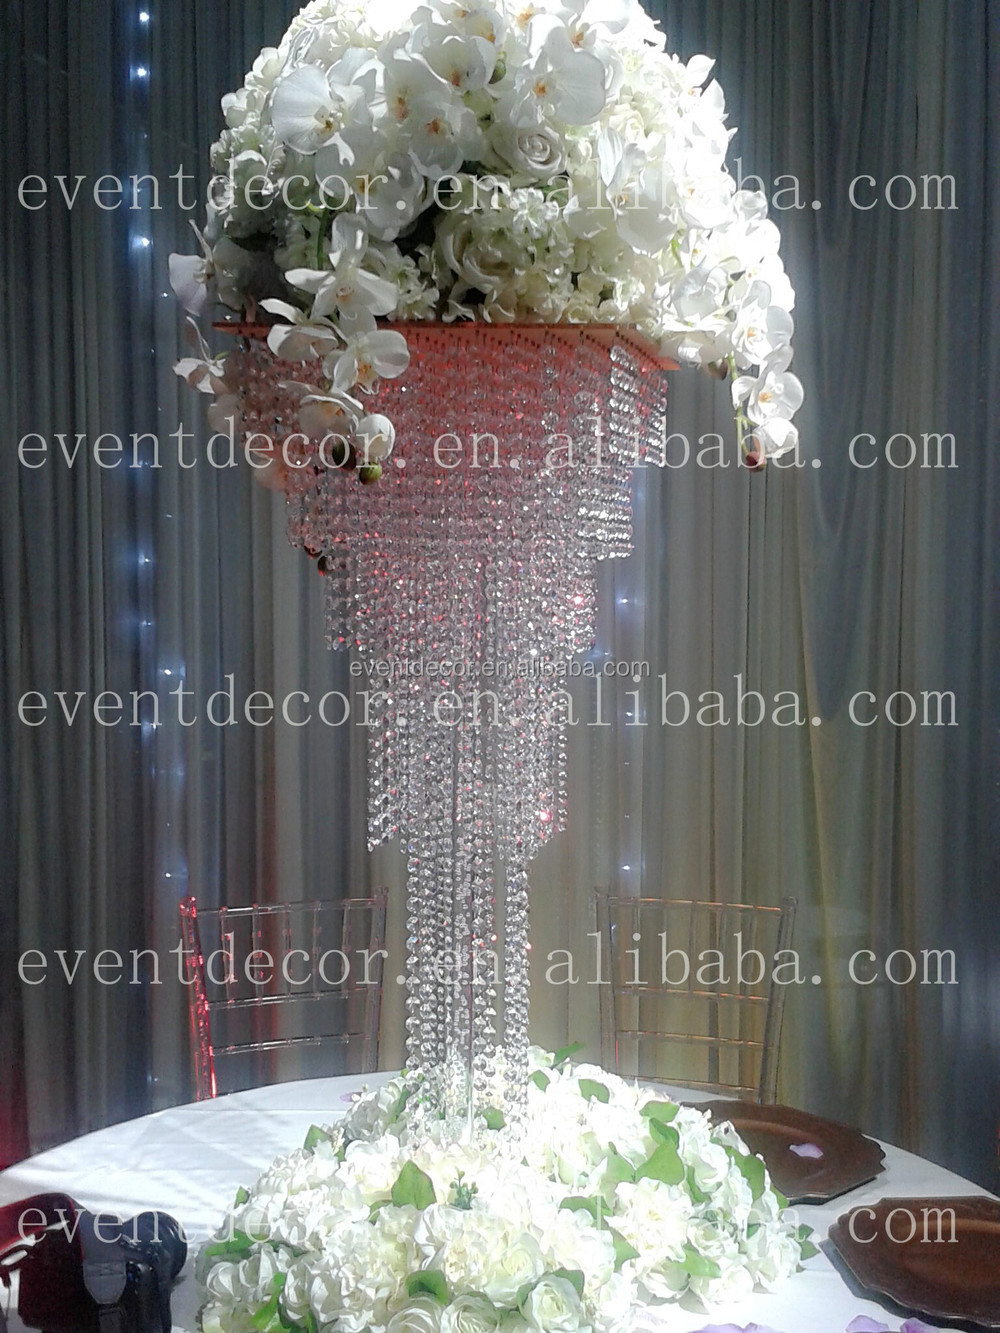 Shining crystal centerpieces for wedding table decoration square shining crystal centerpieces for wedding table decoration square wedding chandelier centerpieces reviewsmspy